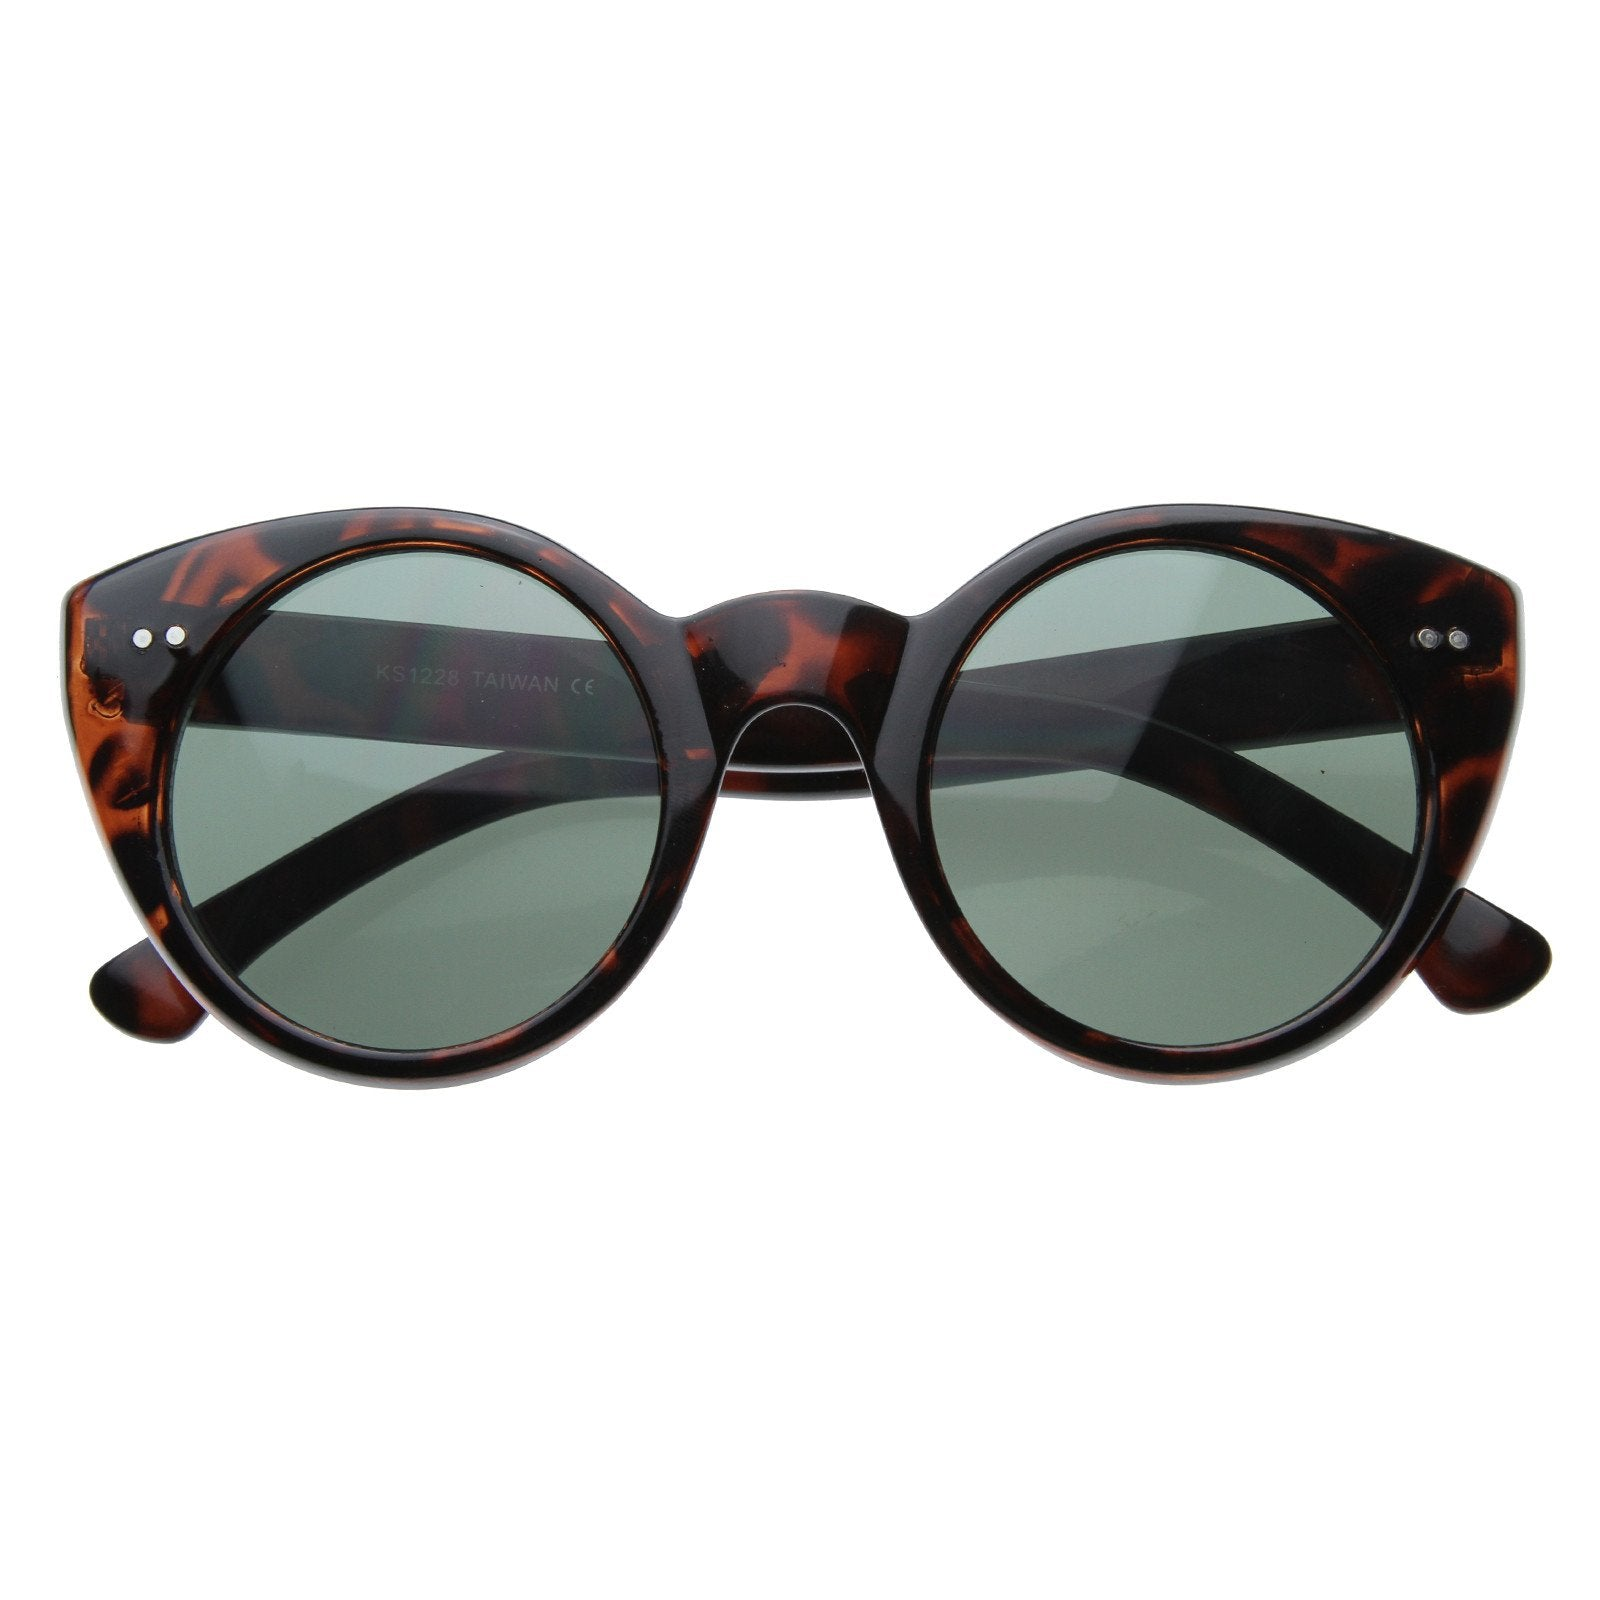 Womens Fashion Modern Cat Eye Retro Circle Round Sunglasses 8297